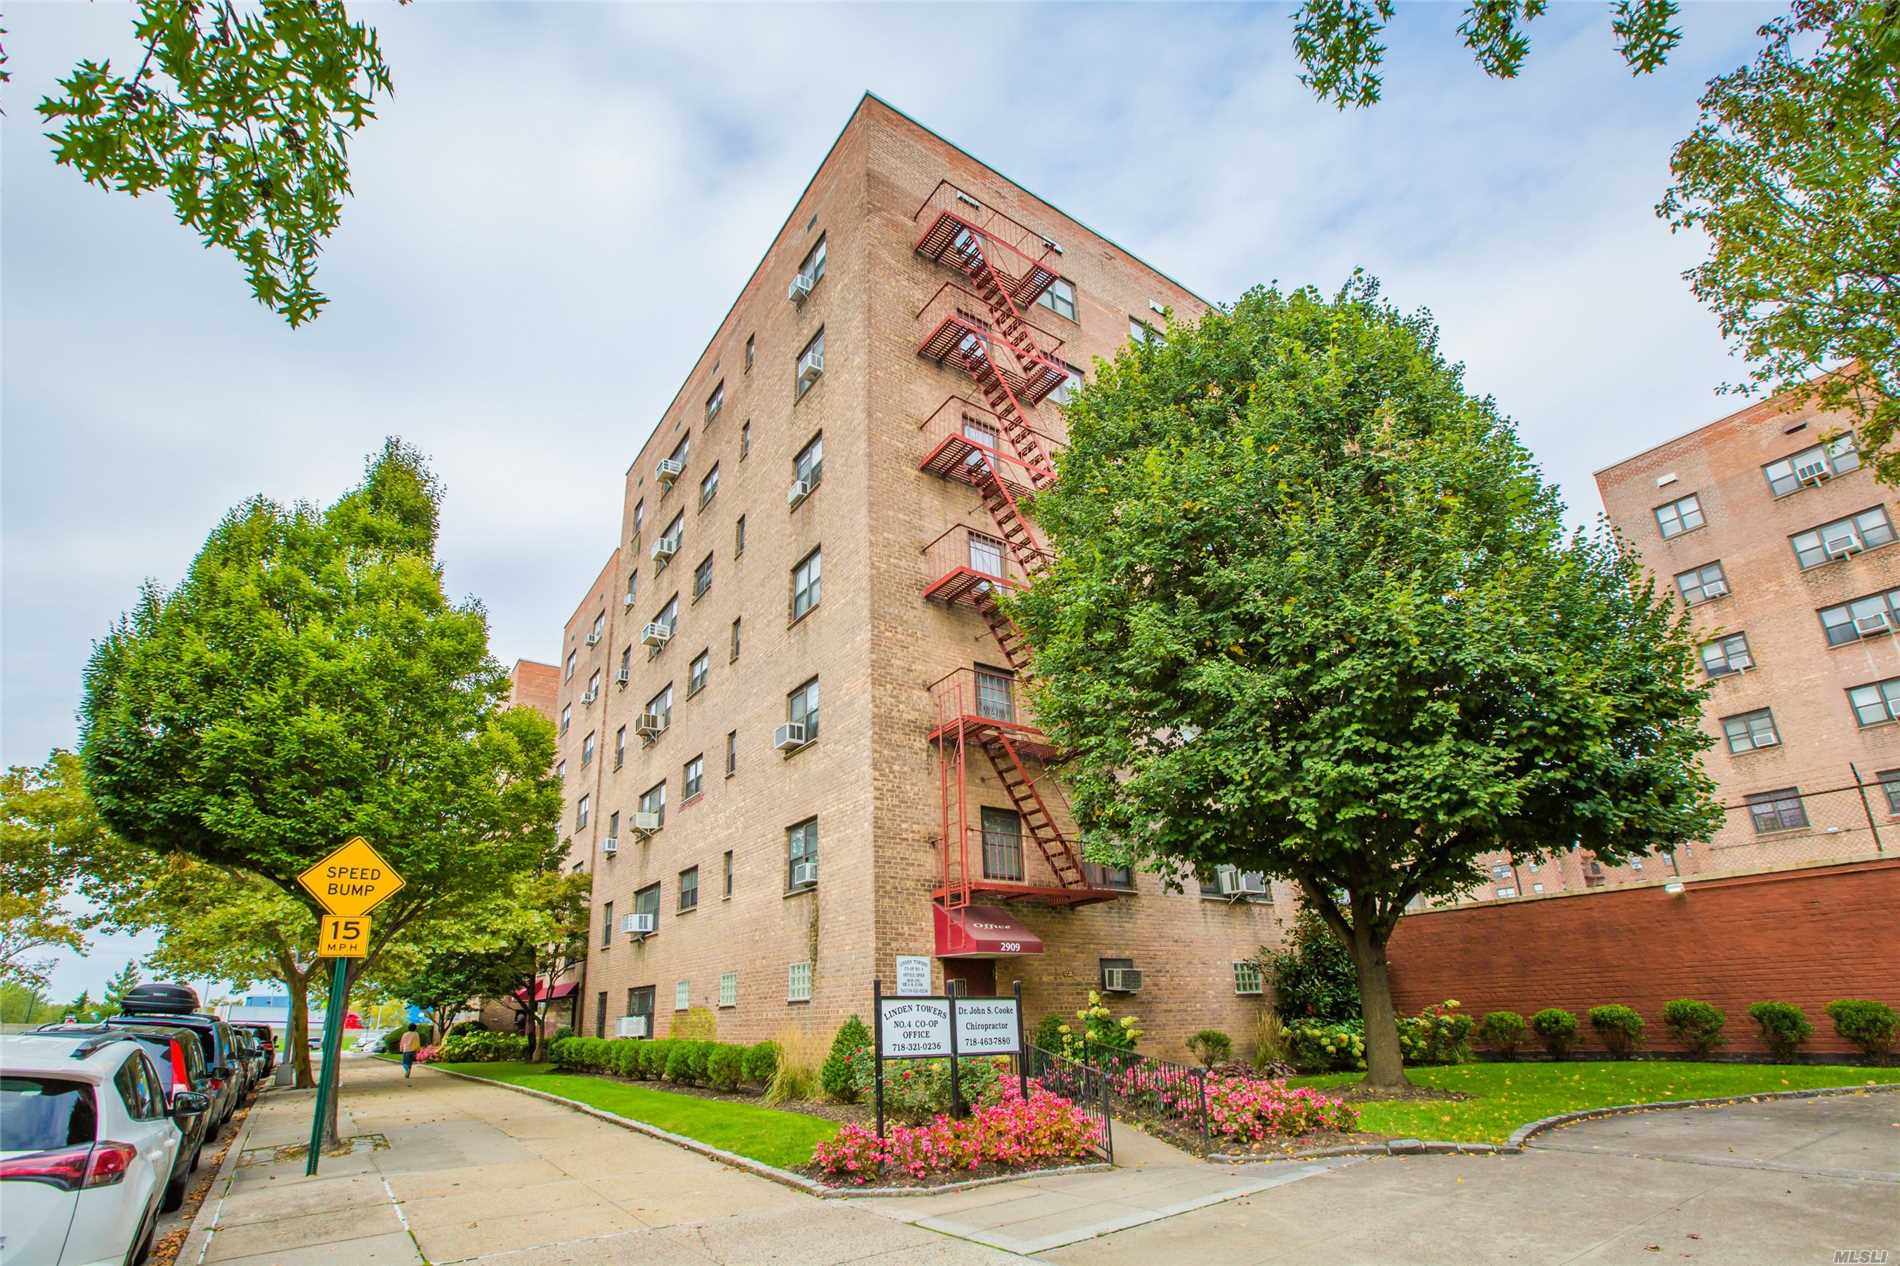 The Apt Is Actually At 2nd Fl. Spcious 2 Bedroom Co-Op In Flushing. Lowest Monthly Charge In The Area. Maintenance Inculdes Heat, Gas & Electricities Charges. Additional Charge $10 Per Air Conditioner. $40 Parking Space. Walking Distance To H Mart, Good Fortune Supermarke?shopping Center, Library, Post Office & School. 15 Mins Walk To Subway #7, Bus: Q25. Q34, Q44, Q16 And Express Bus Qm2 To Nyc